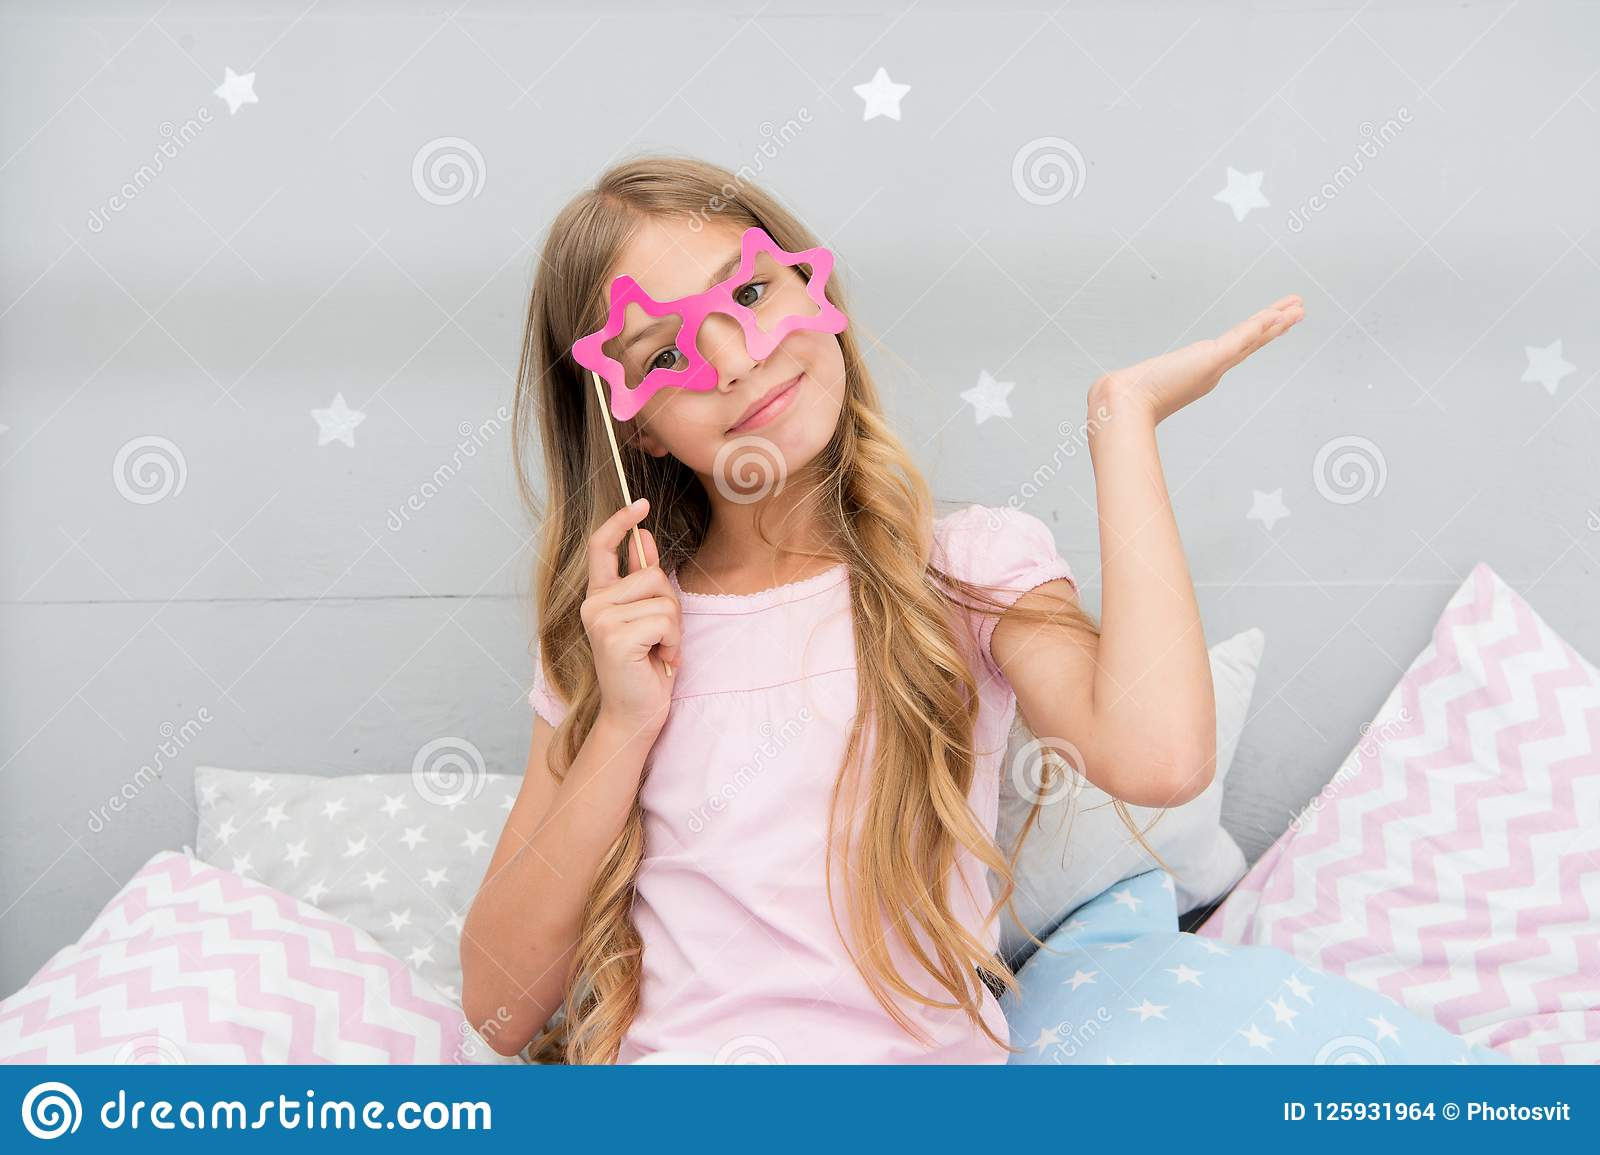 I Am Super Star Girl With Long Blonde Curly Hair Posing Photo Booth